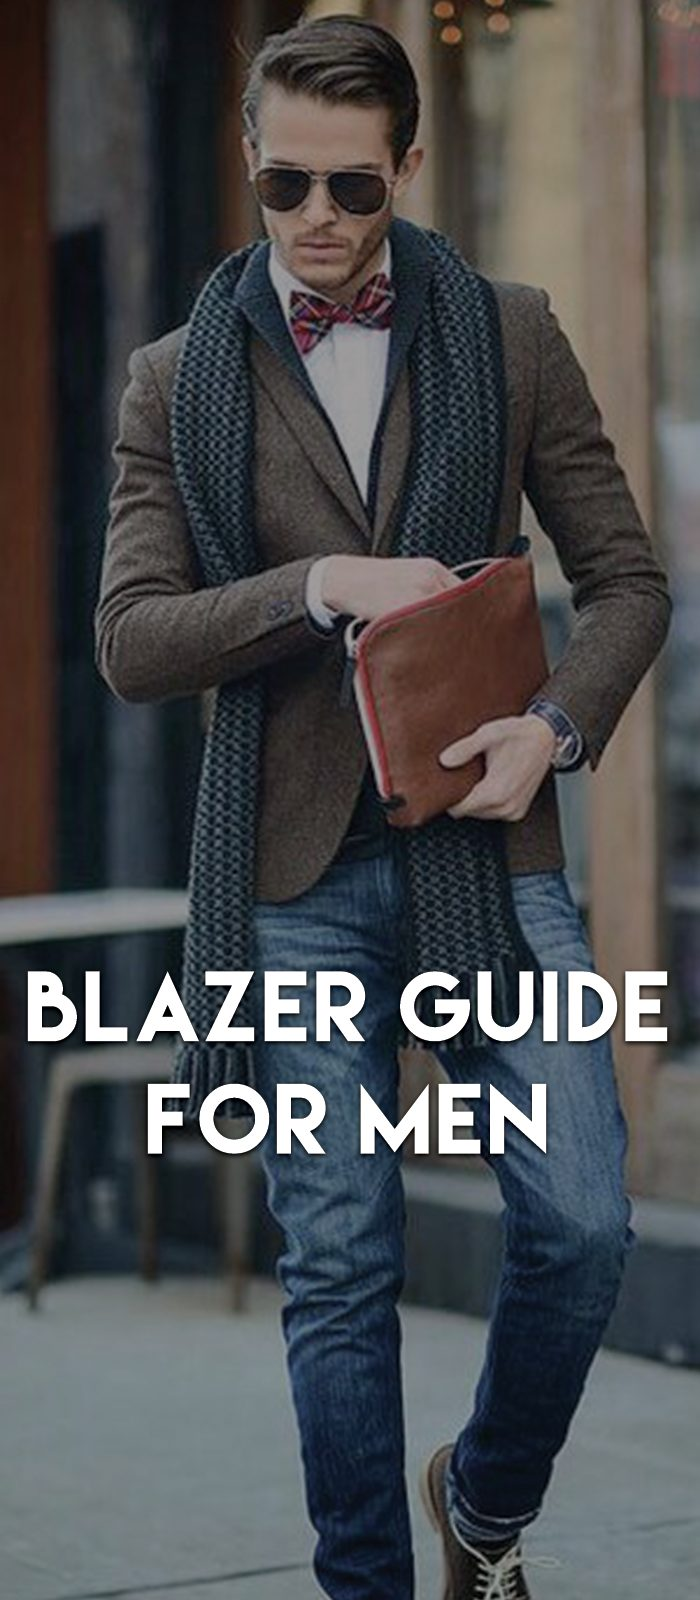 Blazer-Guide-For-Men-